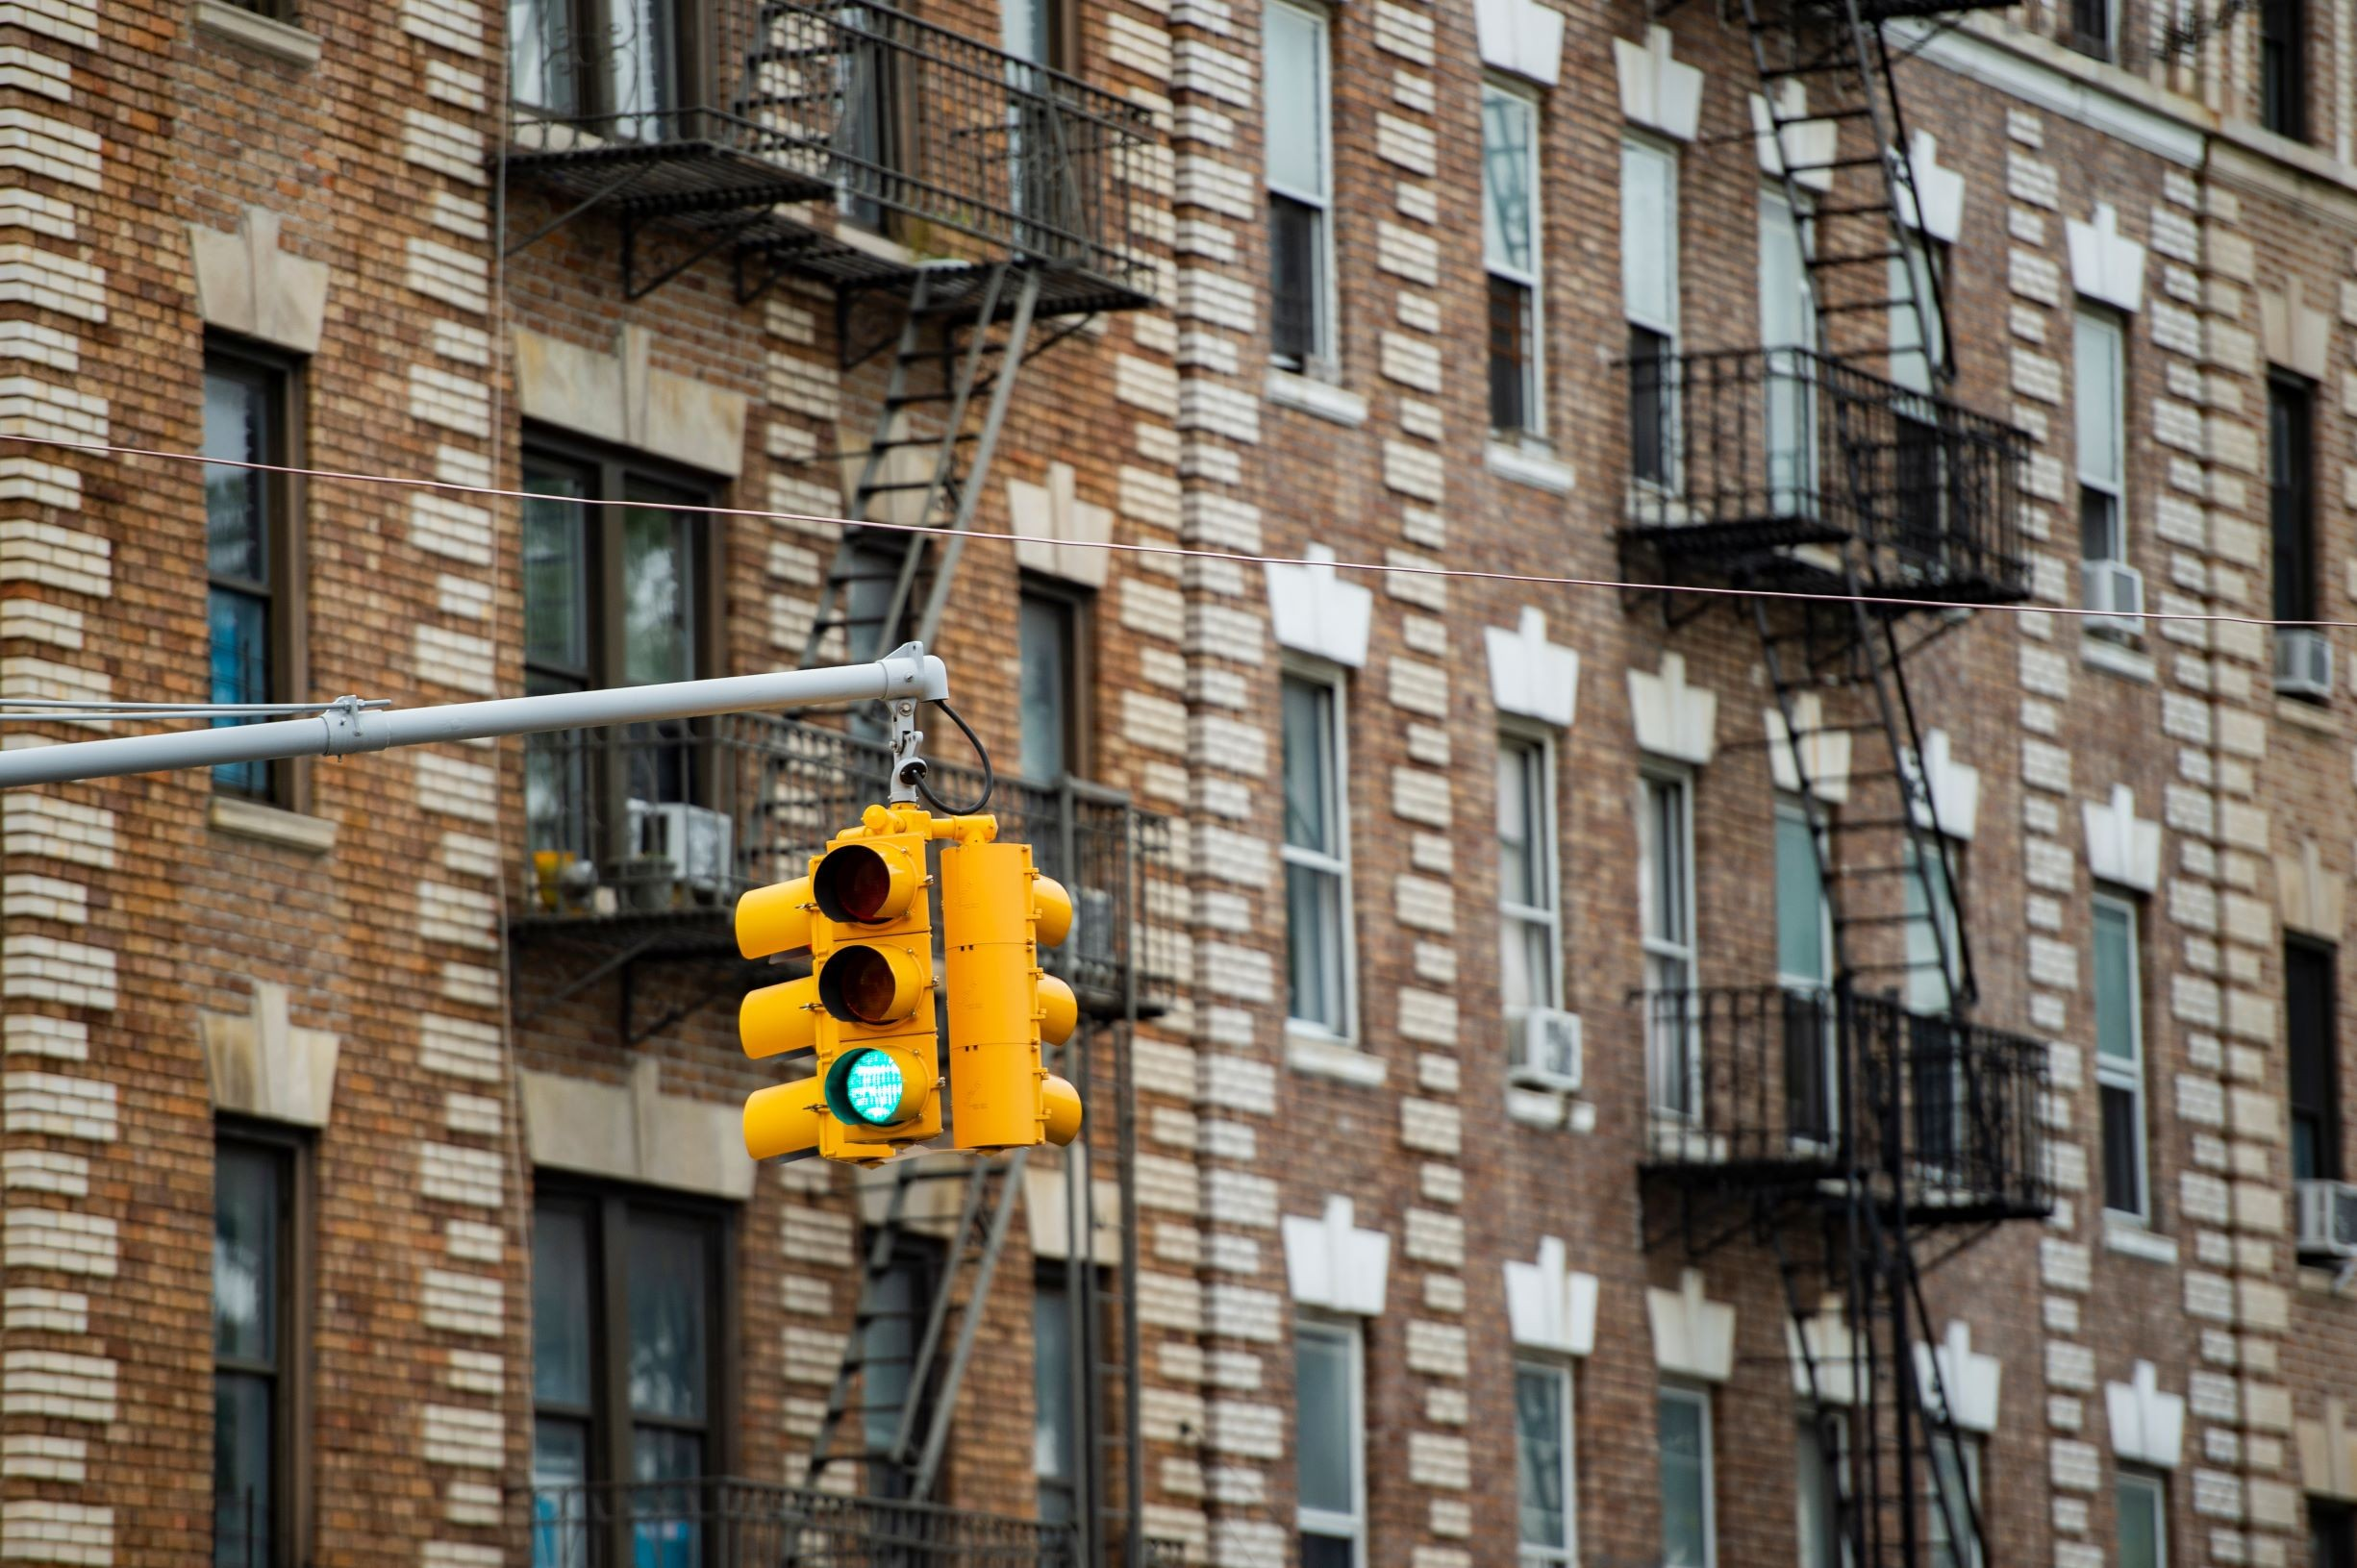 Close-up view of a traffic light and some buildings on background with windows and emergency stairs. Bronx District, New York, USA.